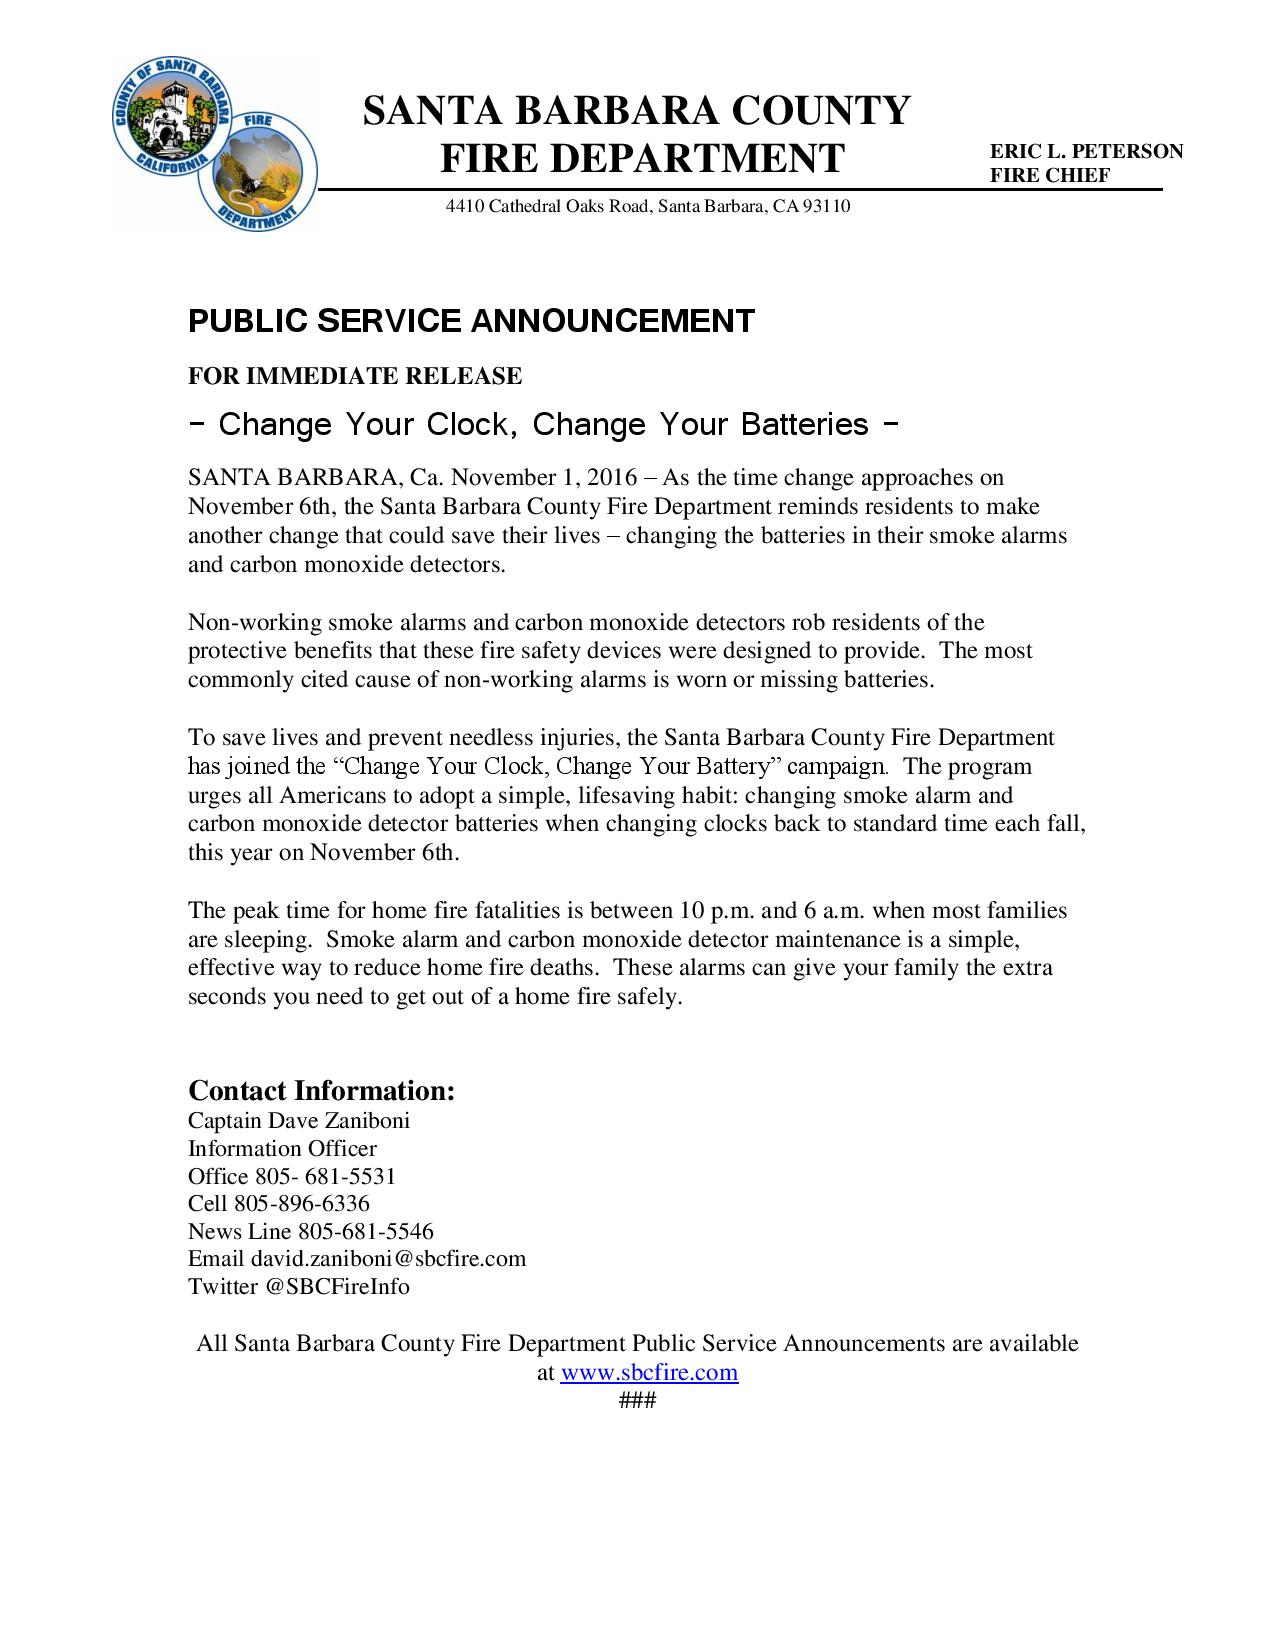 PSA Change Your Clock And Batteries-pg1